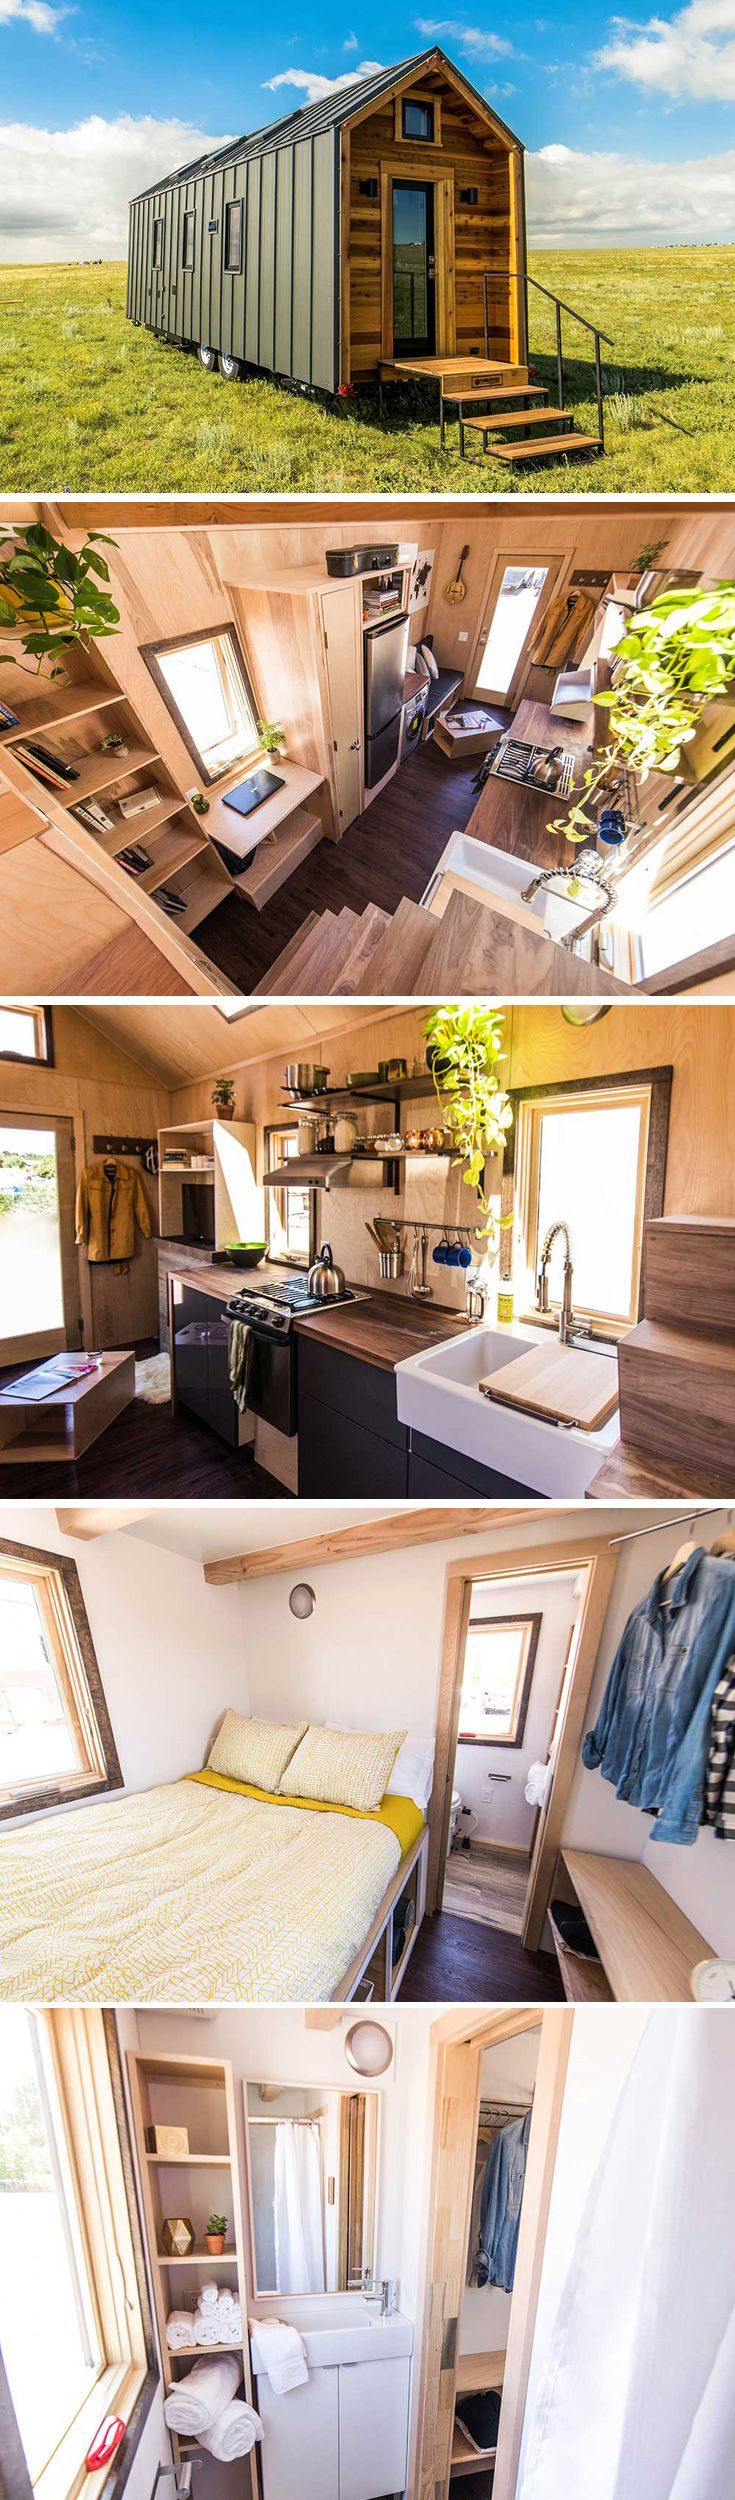 farallon by tumbleweed tiny house company wood and metal the o 39 jays and awesome. Black Bedroom Furniture Sets. Home Design Ideas